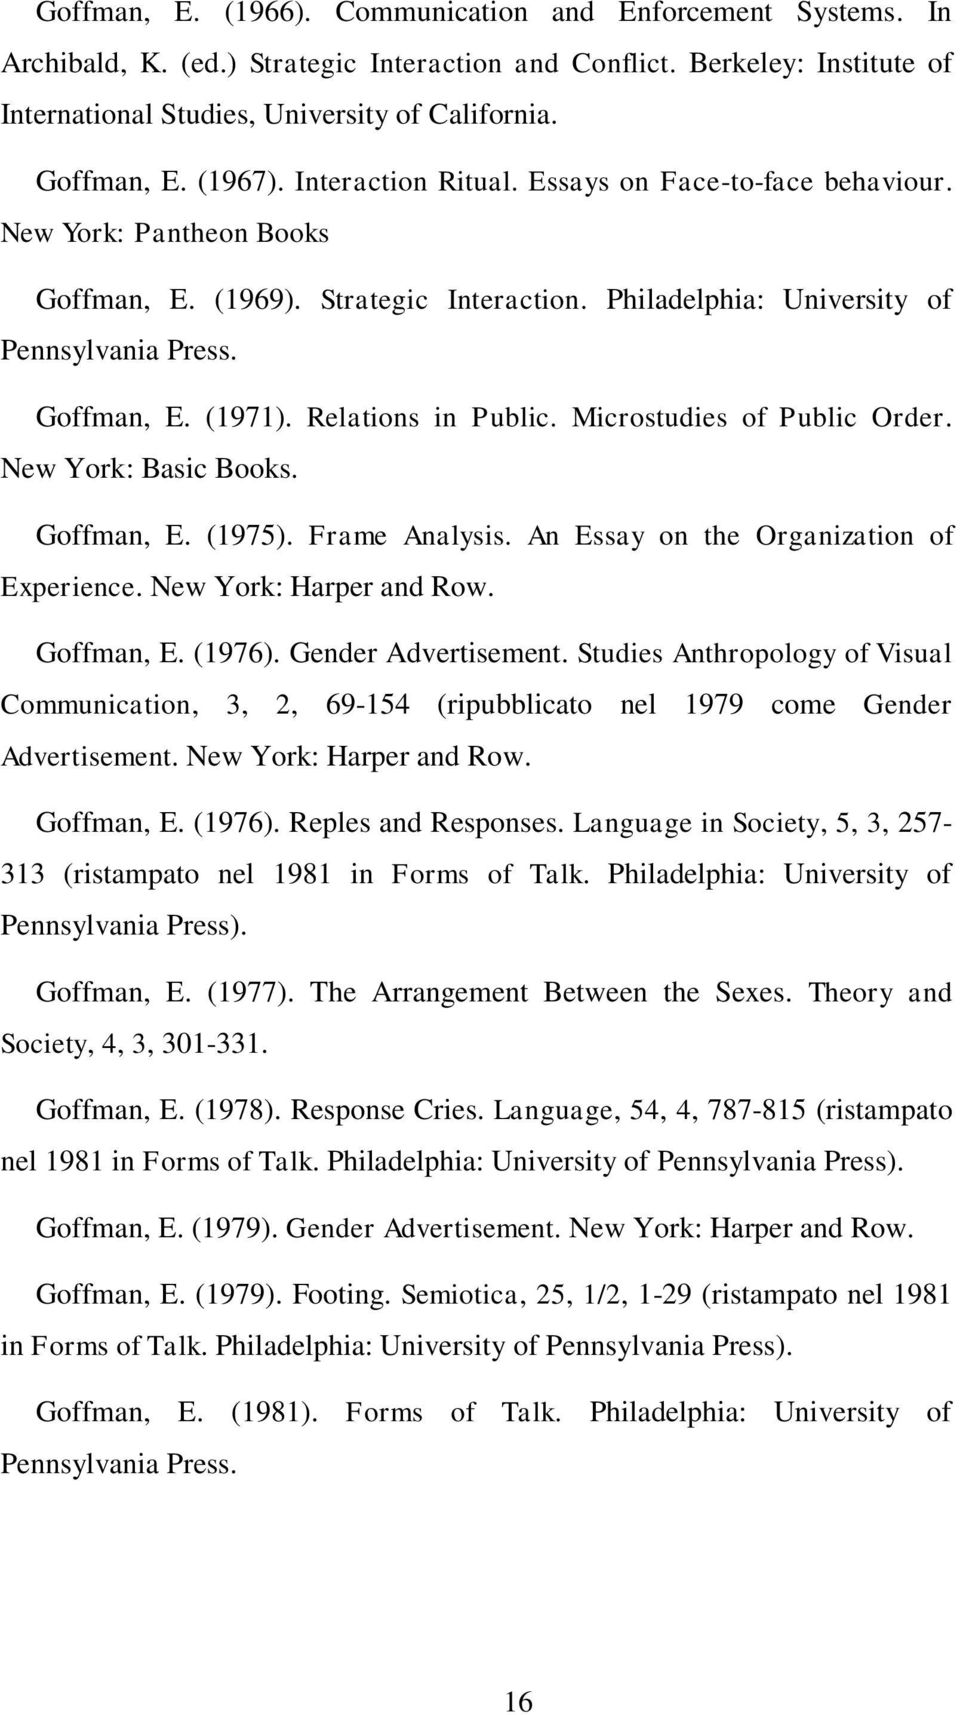 Goffman, E. (1971). Relations in Public. Microstudies of Public Order. New York: Basic Books. Goffman, E. (1975). Frame Analysis. An Essay on the Organization of Experience. New York: Harper and Row.